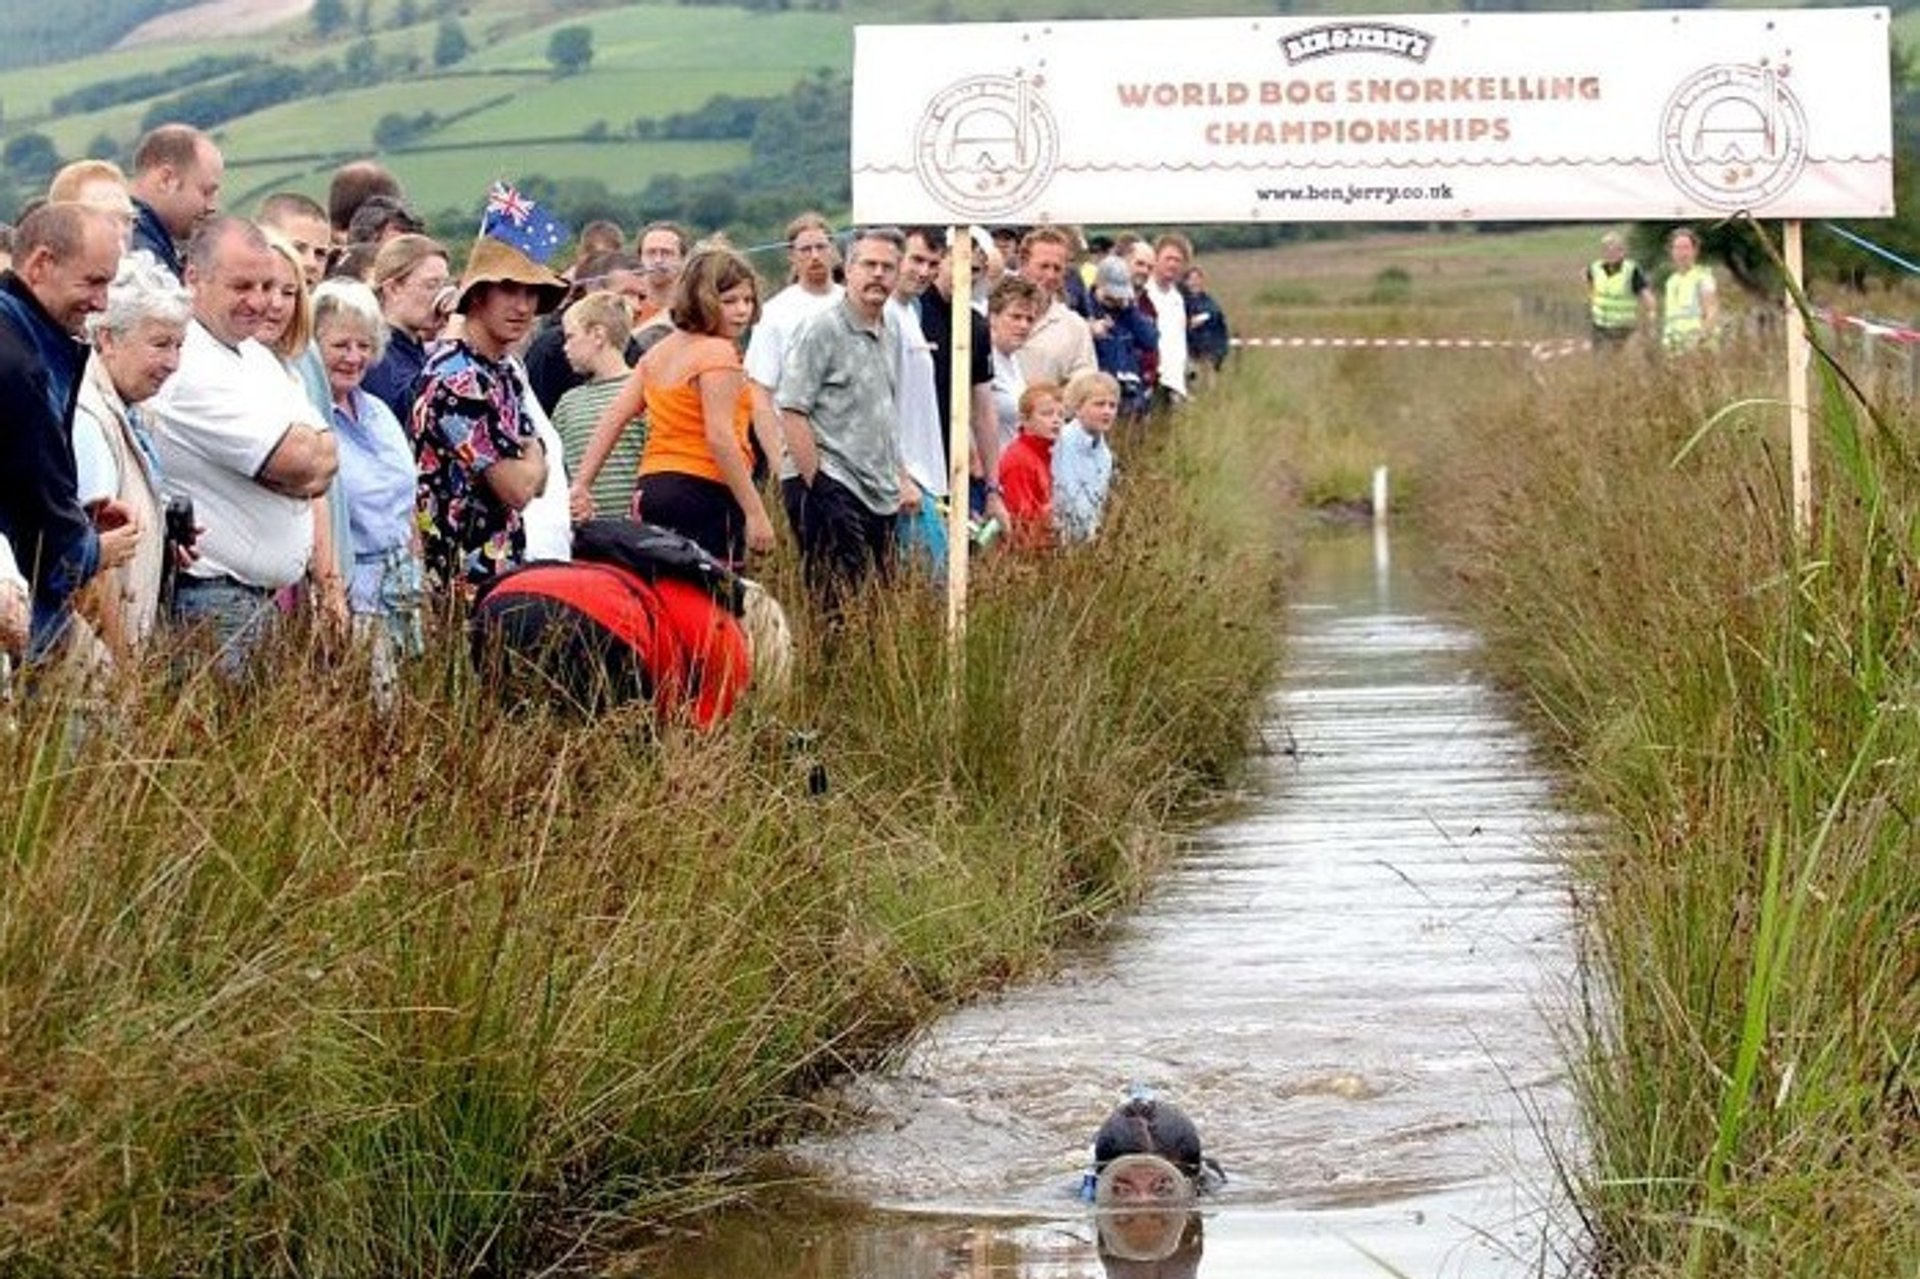 World Bog Snorkelling Championship in Wales - Best Time